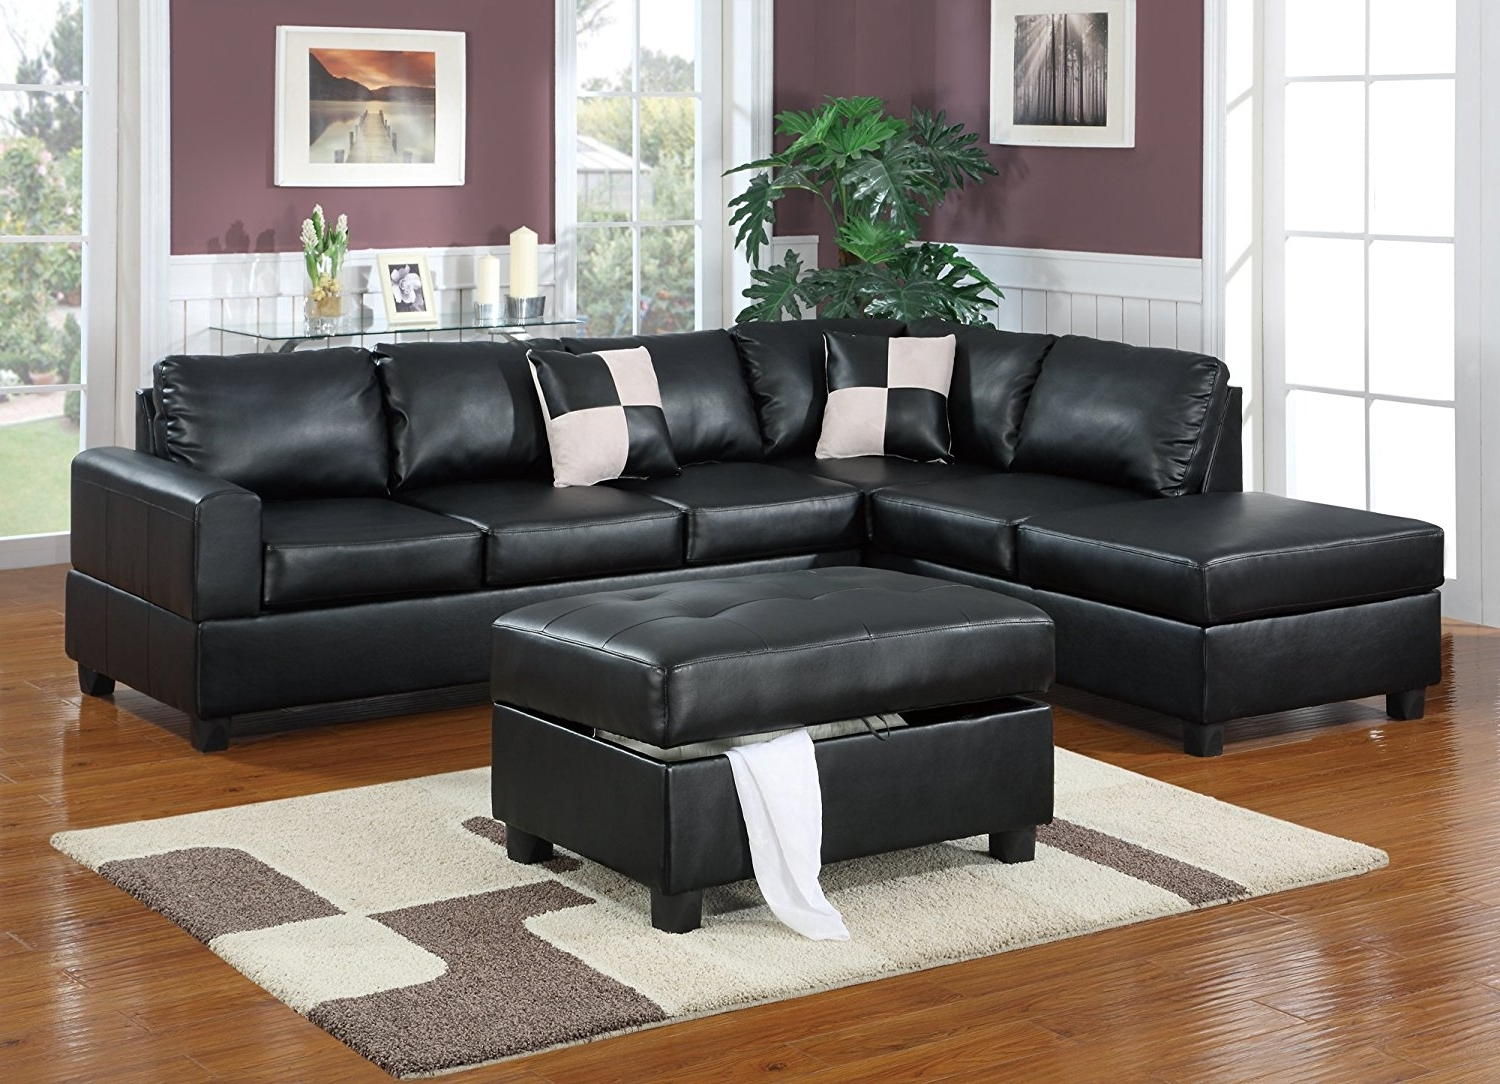 Amazon: Bobkona Hampshire Collection 3 Piece Sectional Sofa Regarding Most Recently Released Black Leather Sectionals With Ottoman (View 2 of 15)